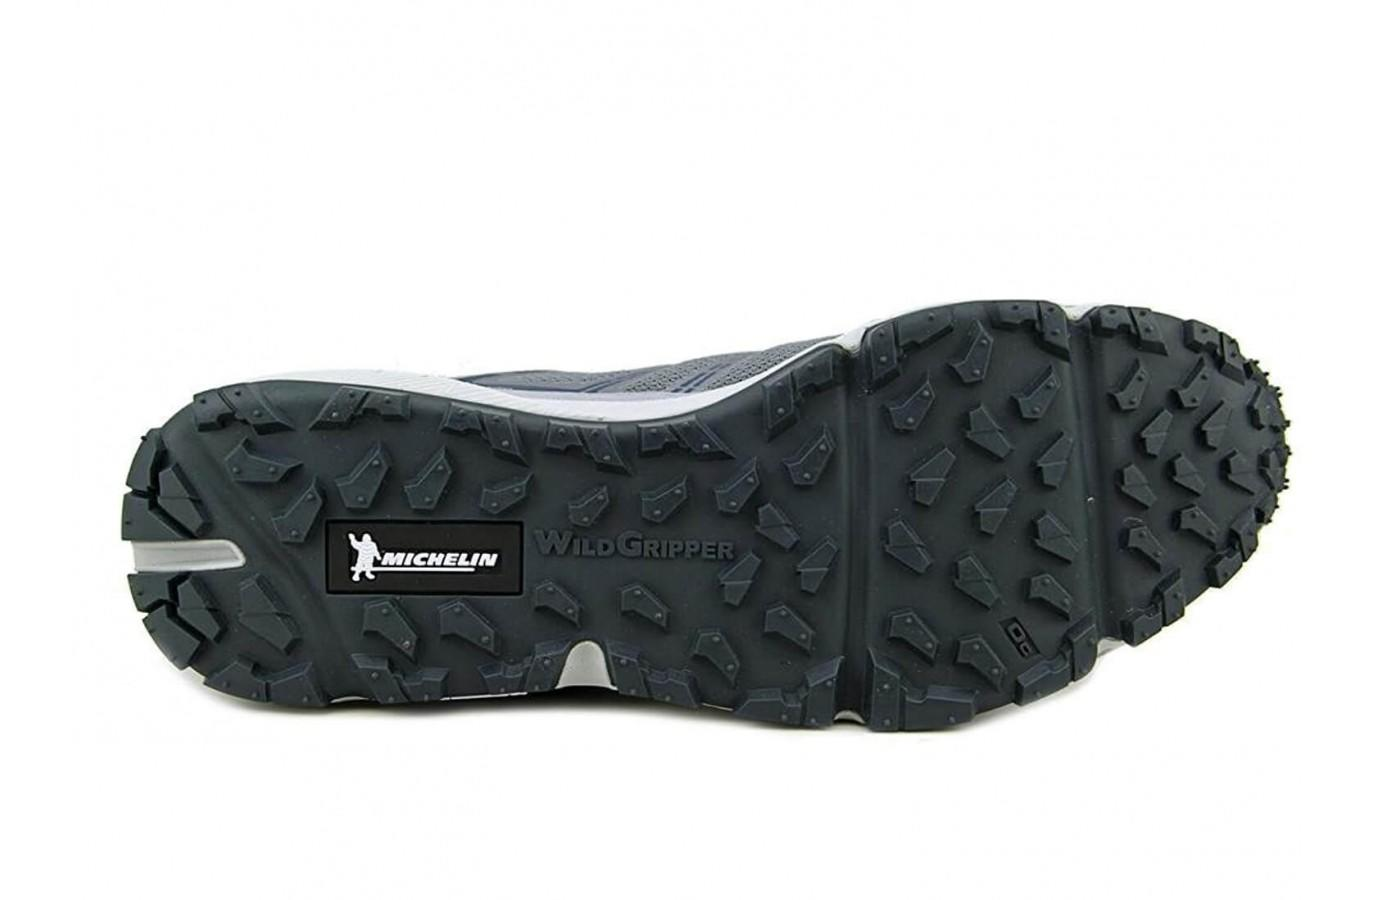 Under Armour Verge Low GTX bottom view